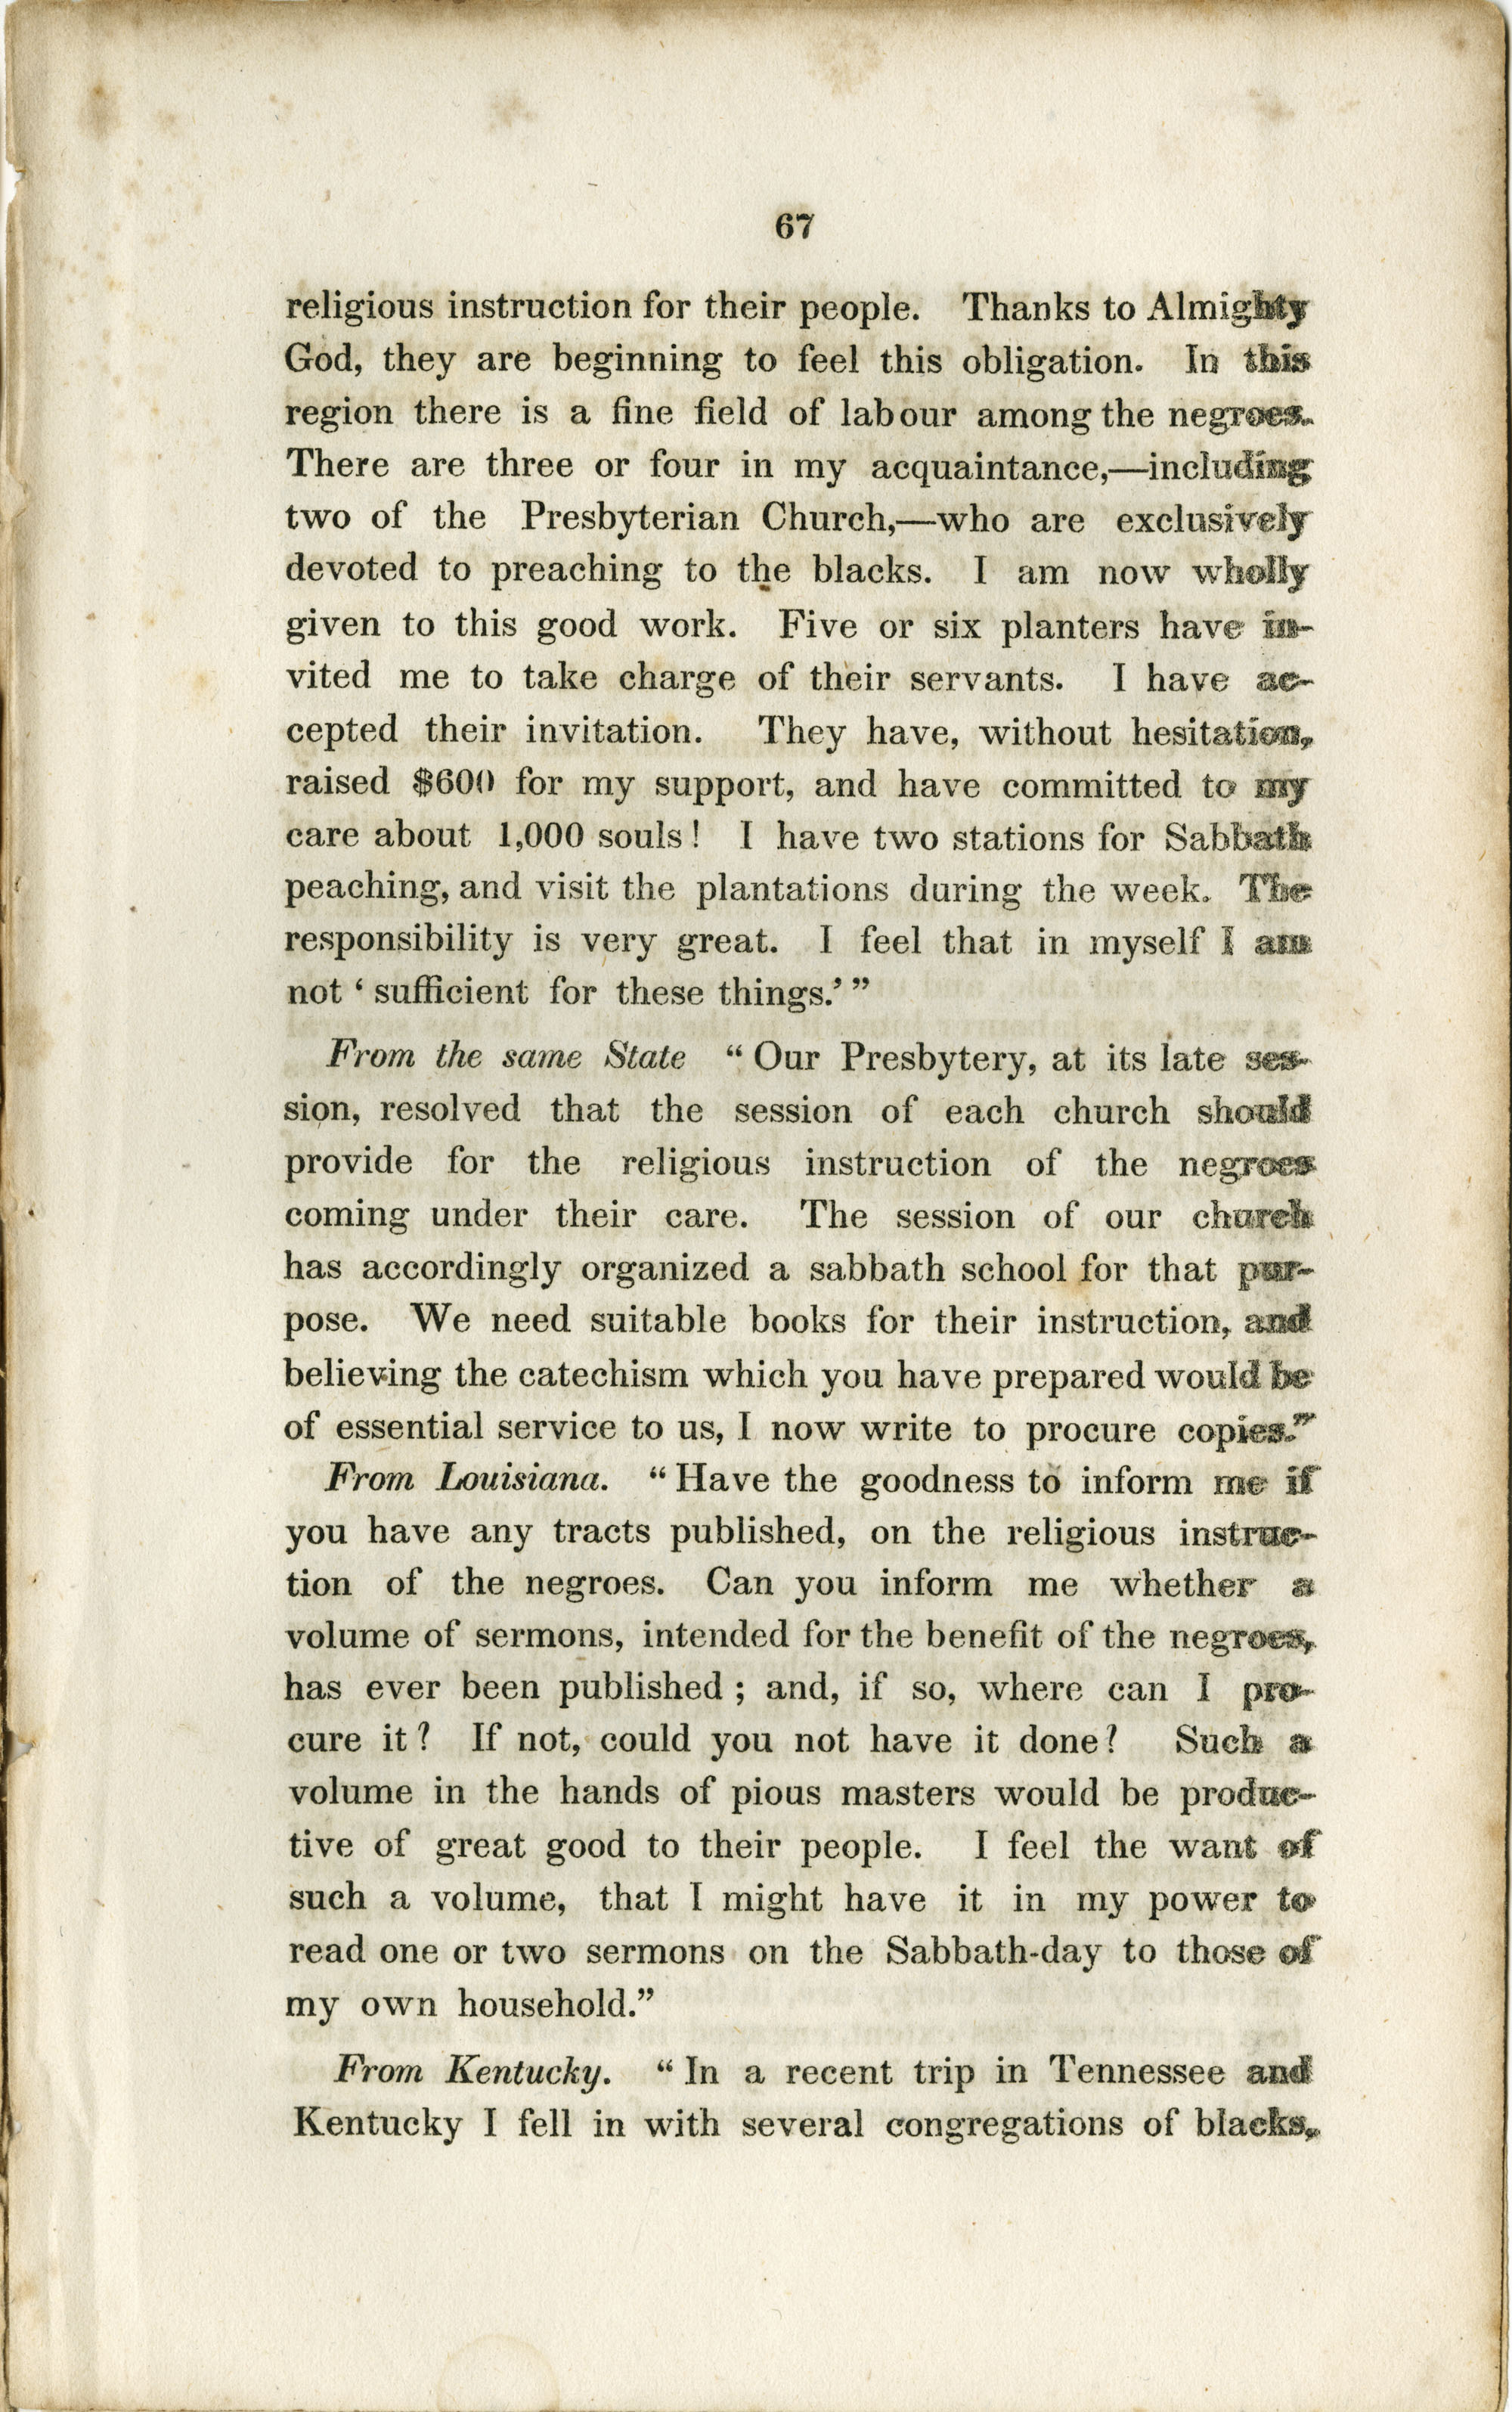 Report of the Committee, Page 67